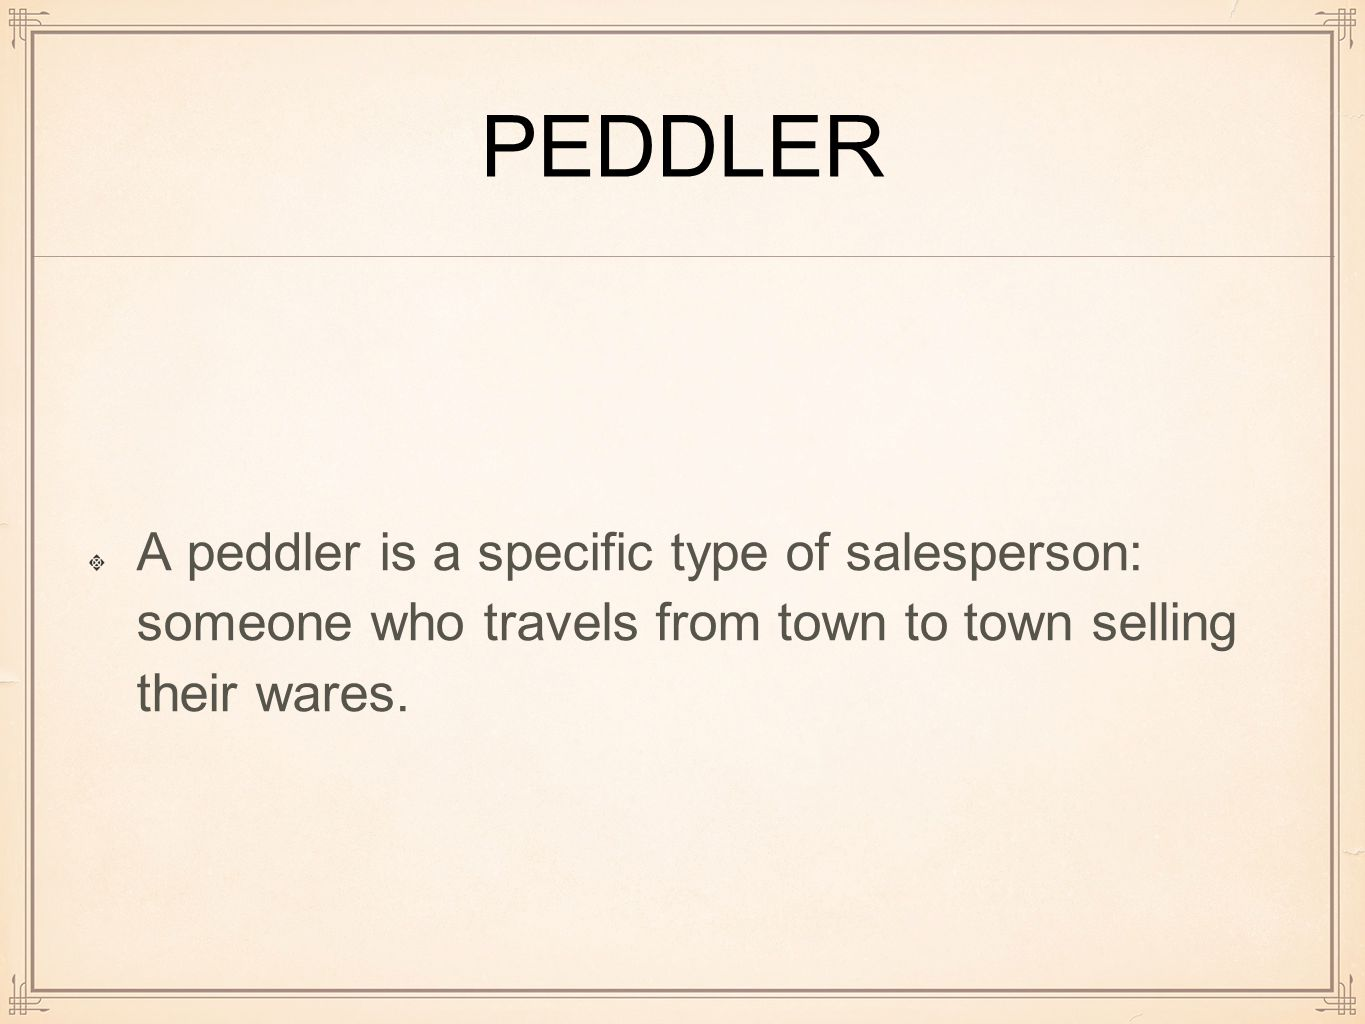 PEDDLER A peddler is a specific type of salesperson: someone who travels from town to town selling their wares.